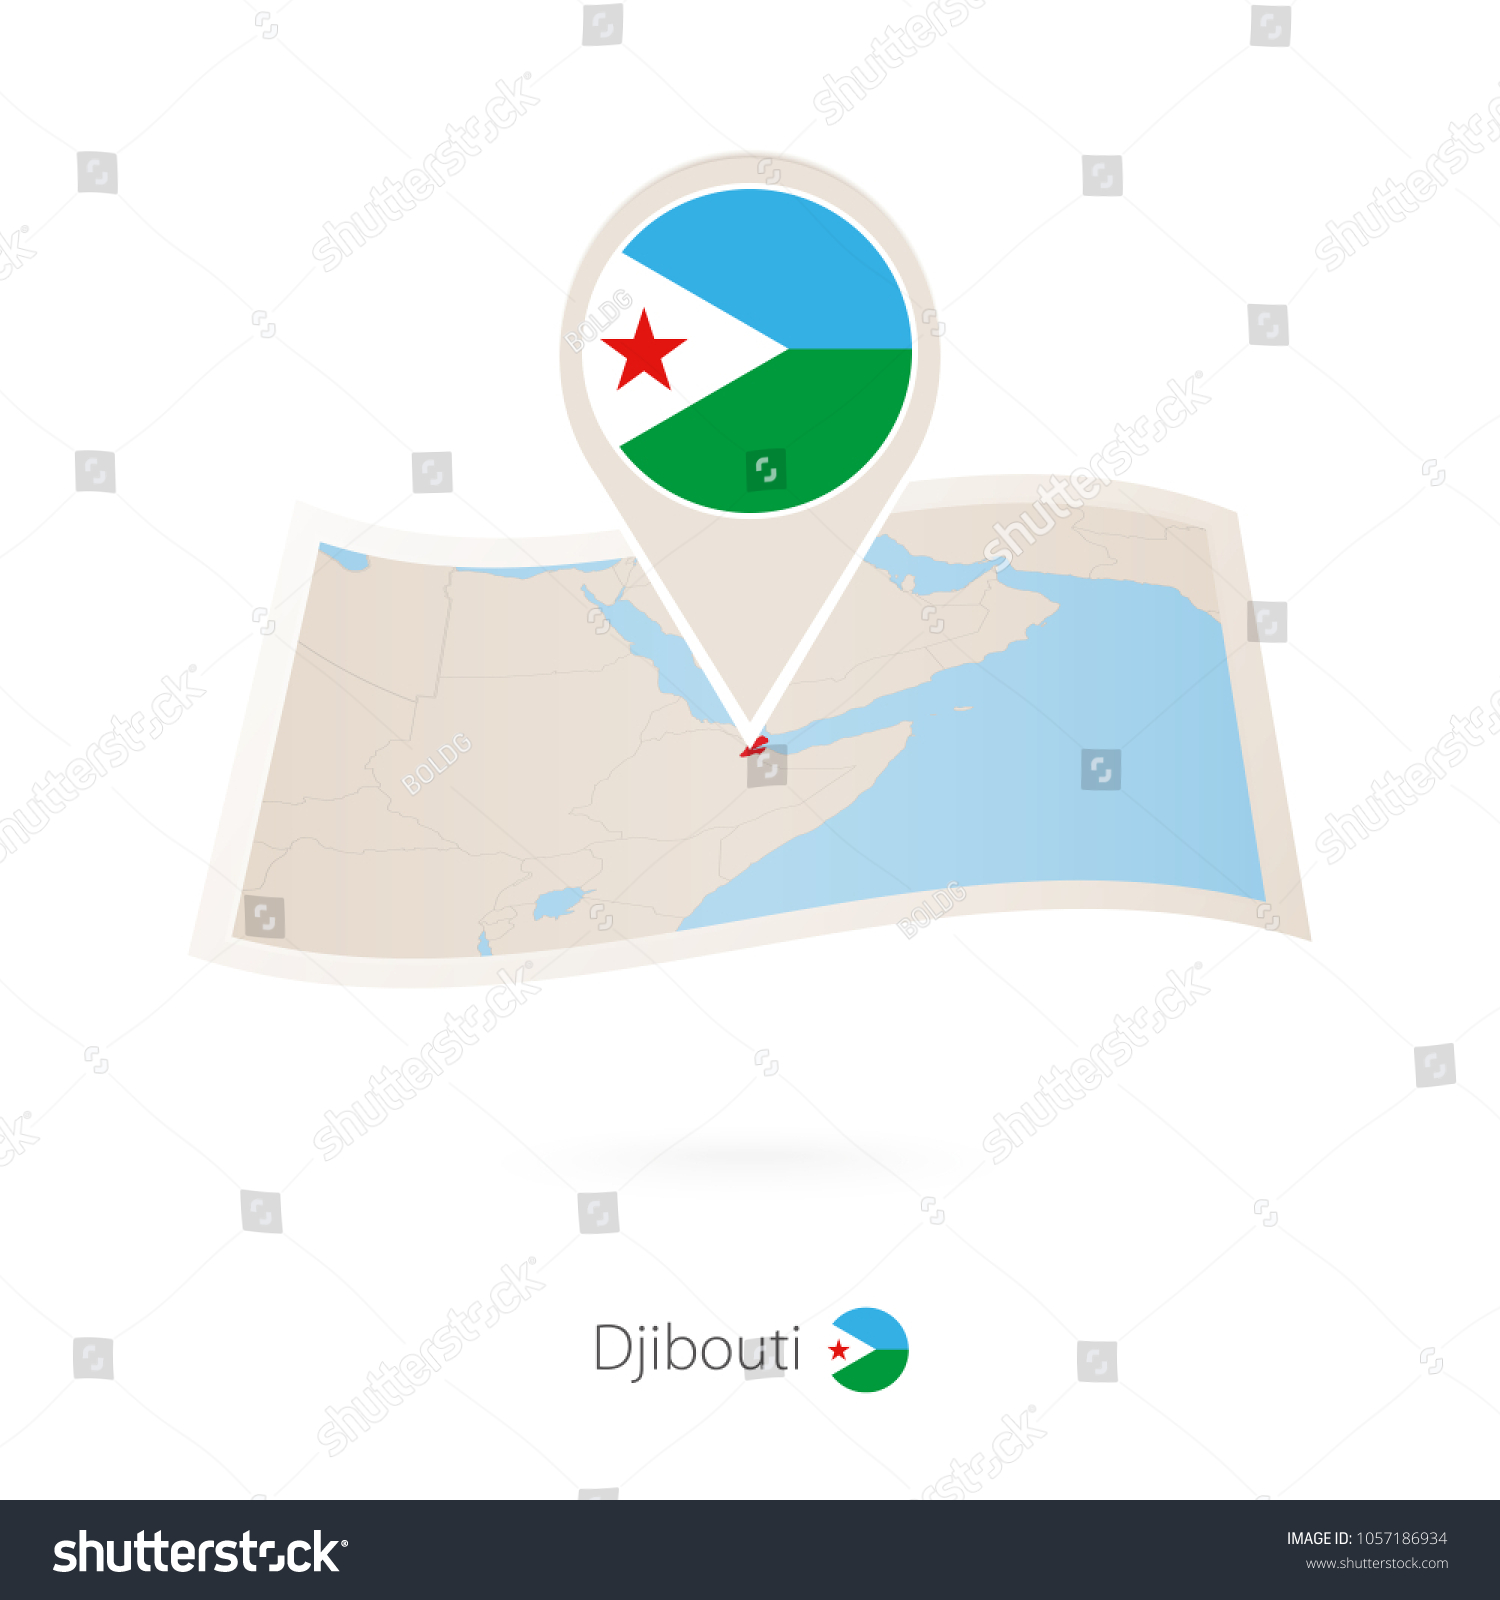 folded paper map djibouti flag pin stock vector 1057186934 rh shutterstock com Veterans Flag Folded Folded Flag Presentation